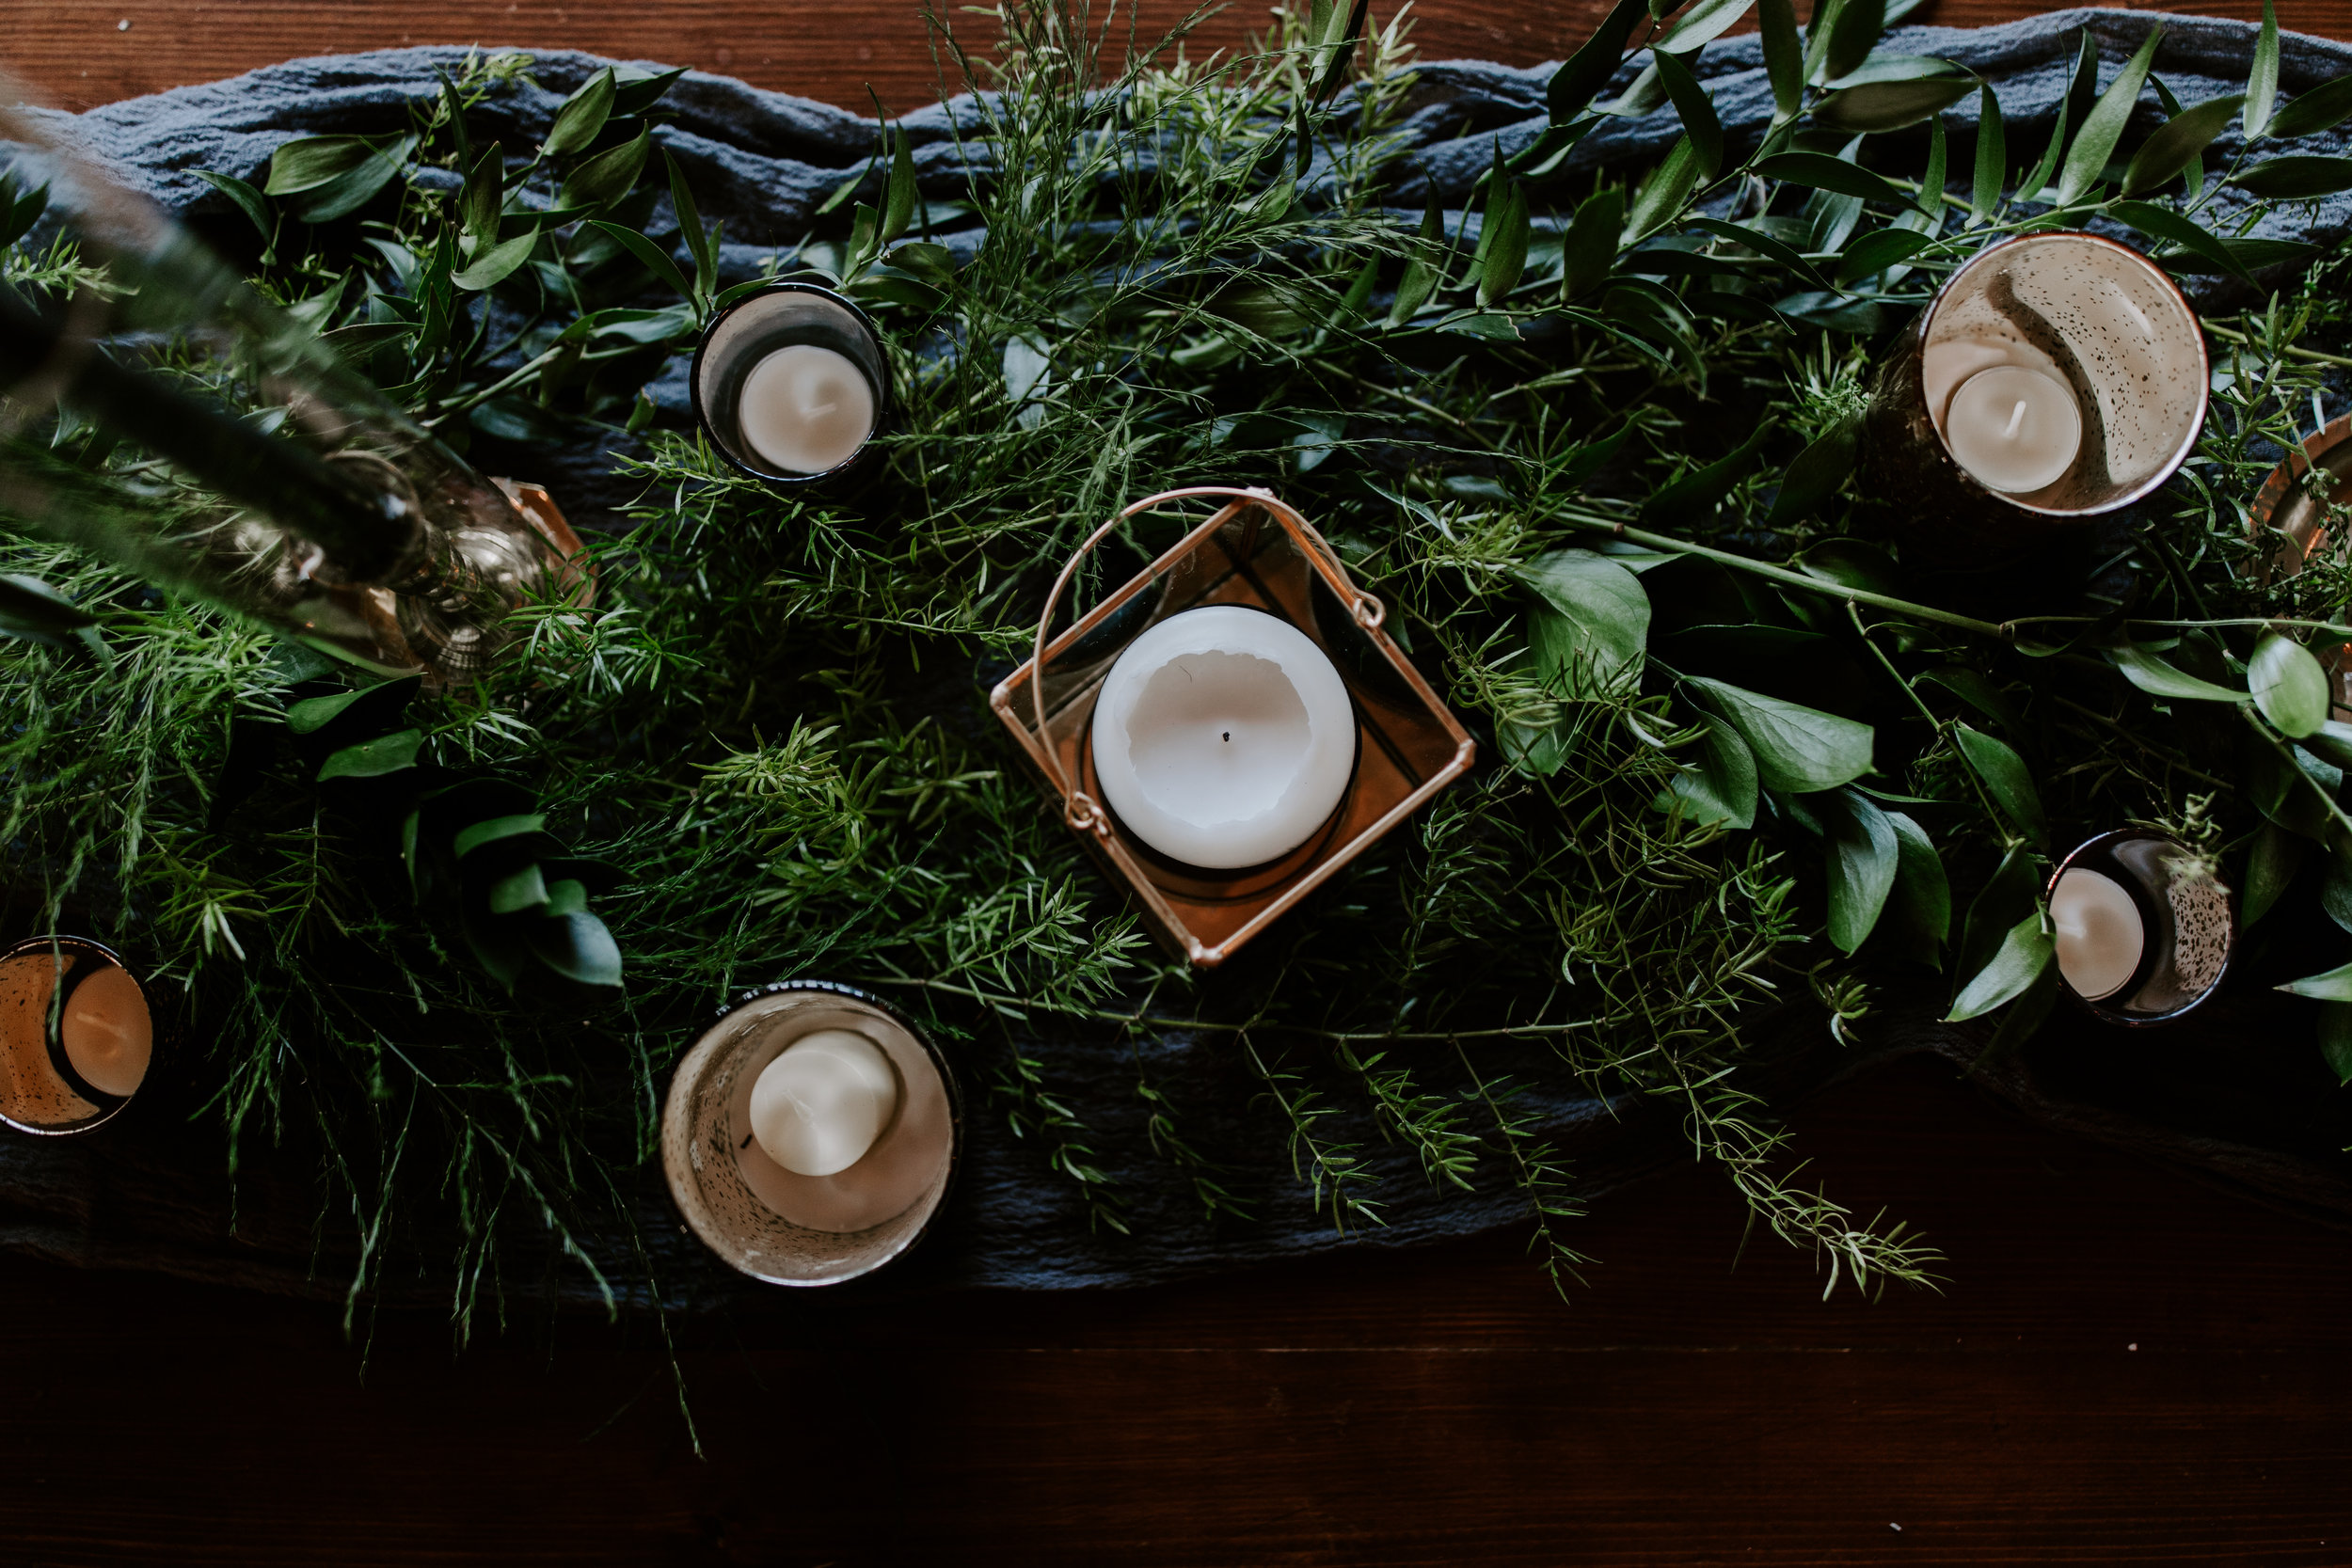 Moody Decor for Edgy Spring Wedding